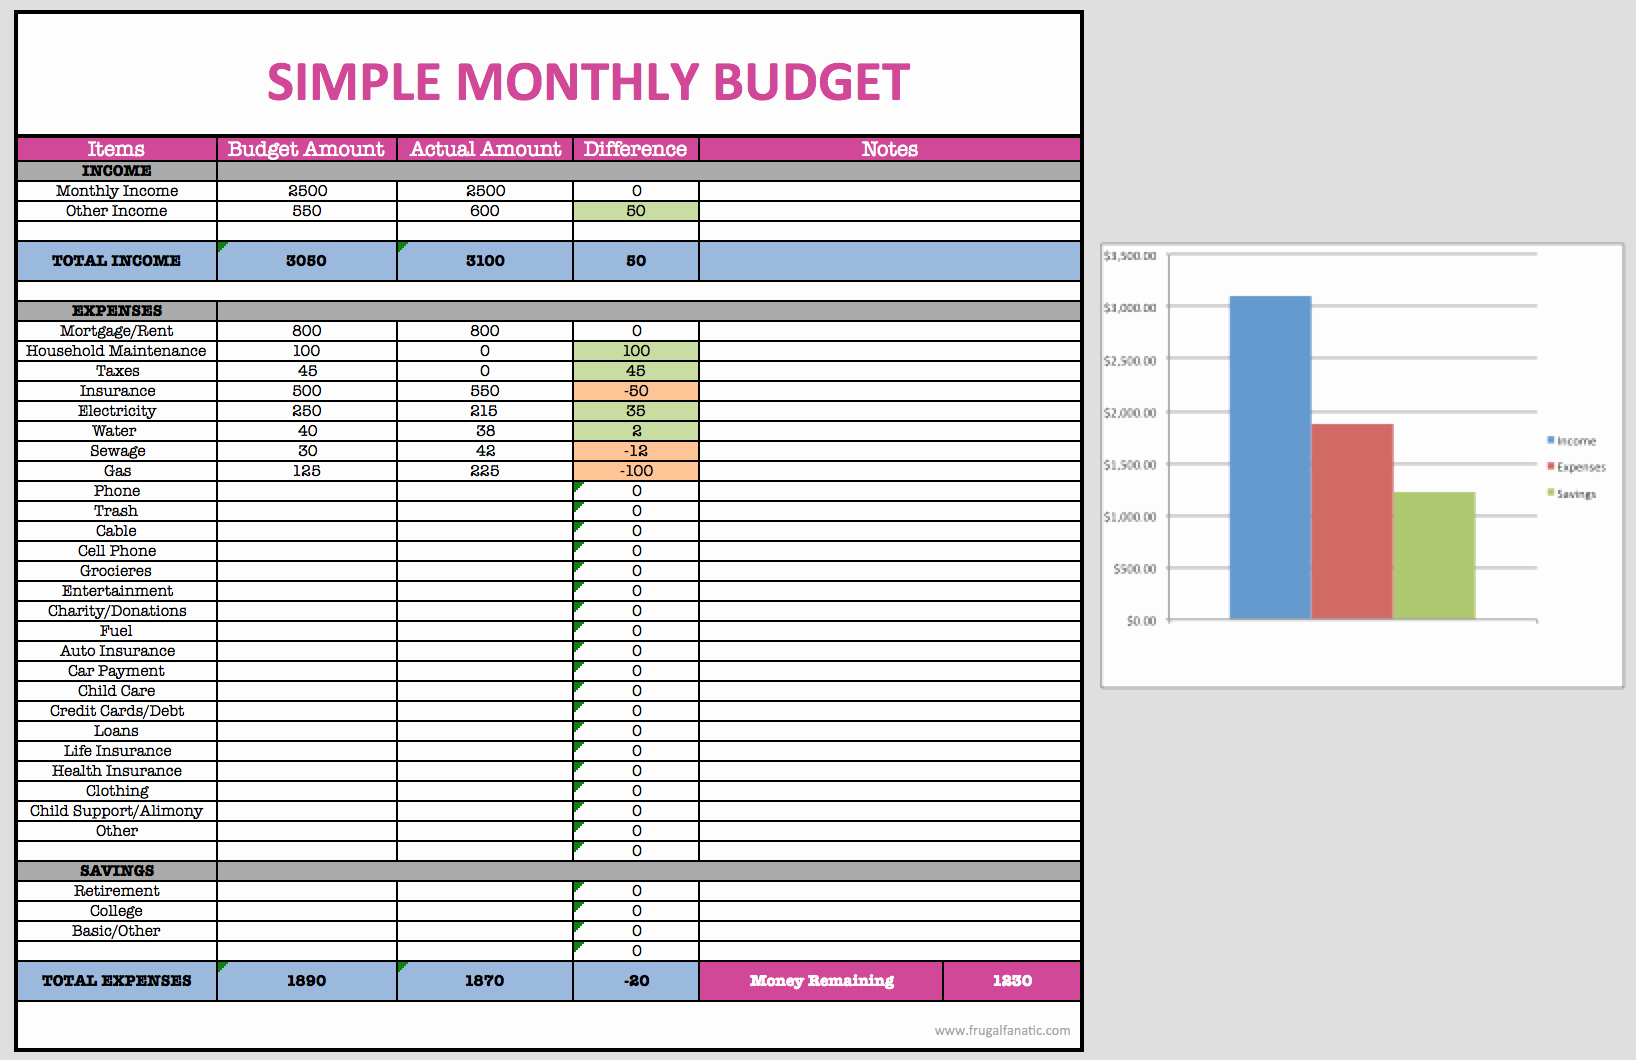 Simple Monthly Budget Template Excel Fresh Monthly Bud Spreadsheet Frugal Fanatic Shop